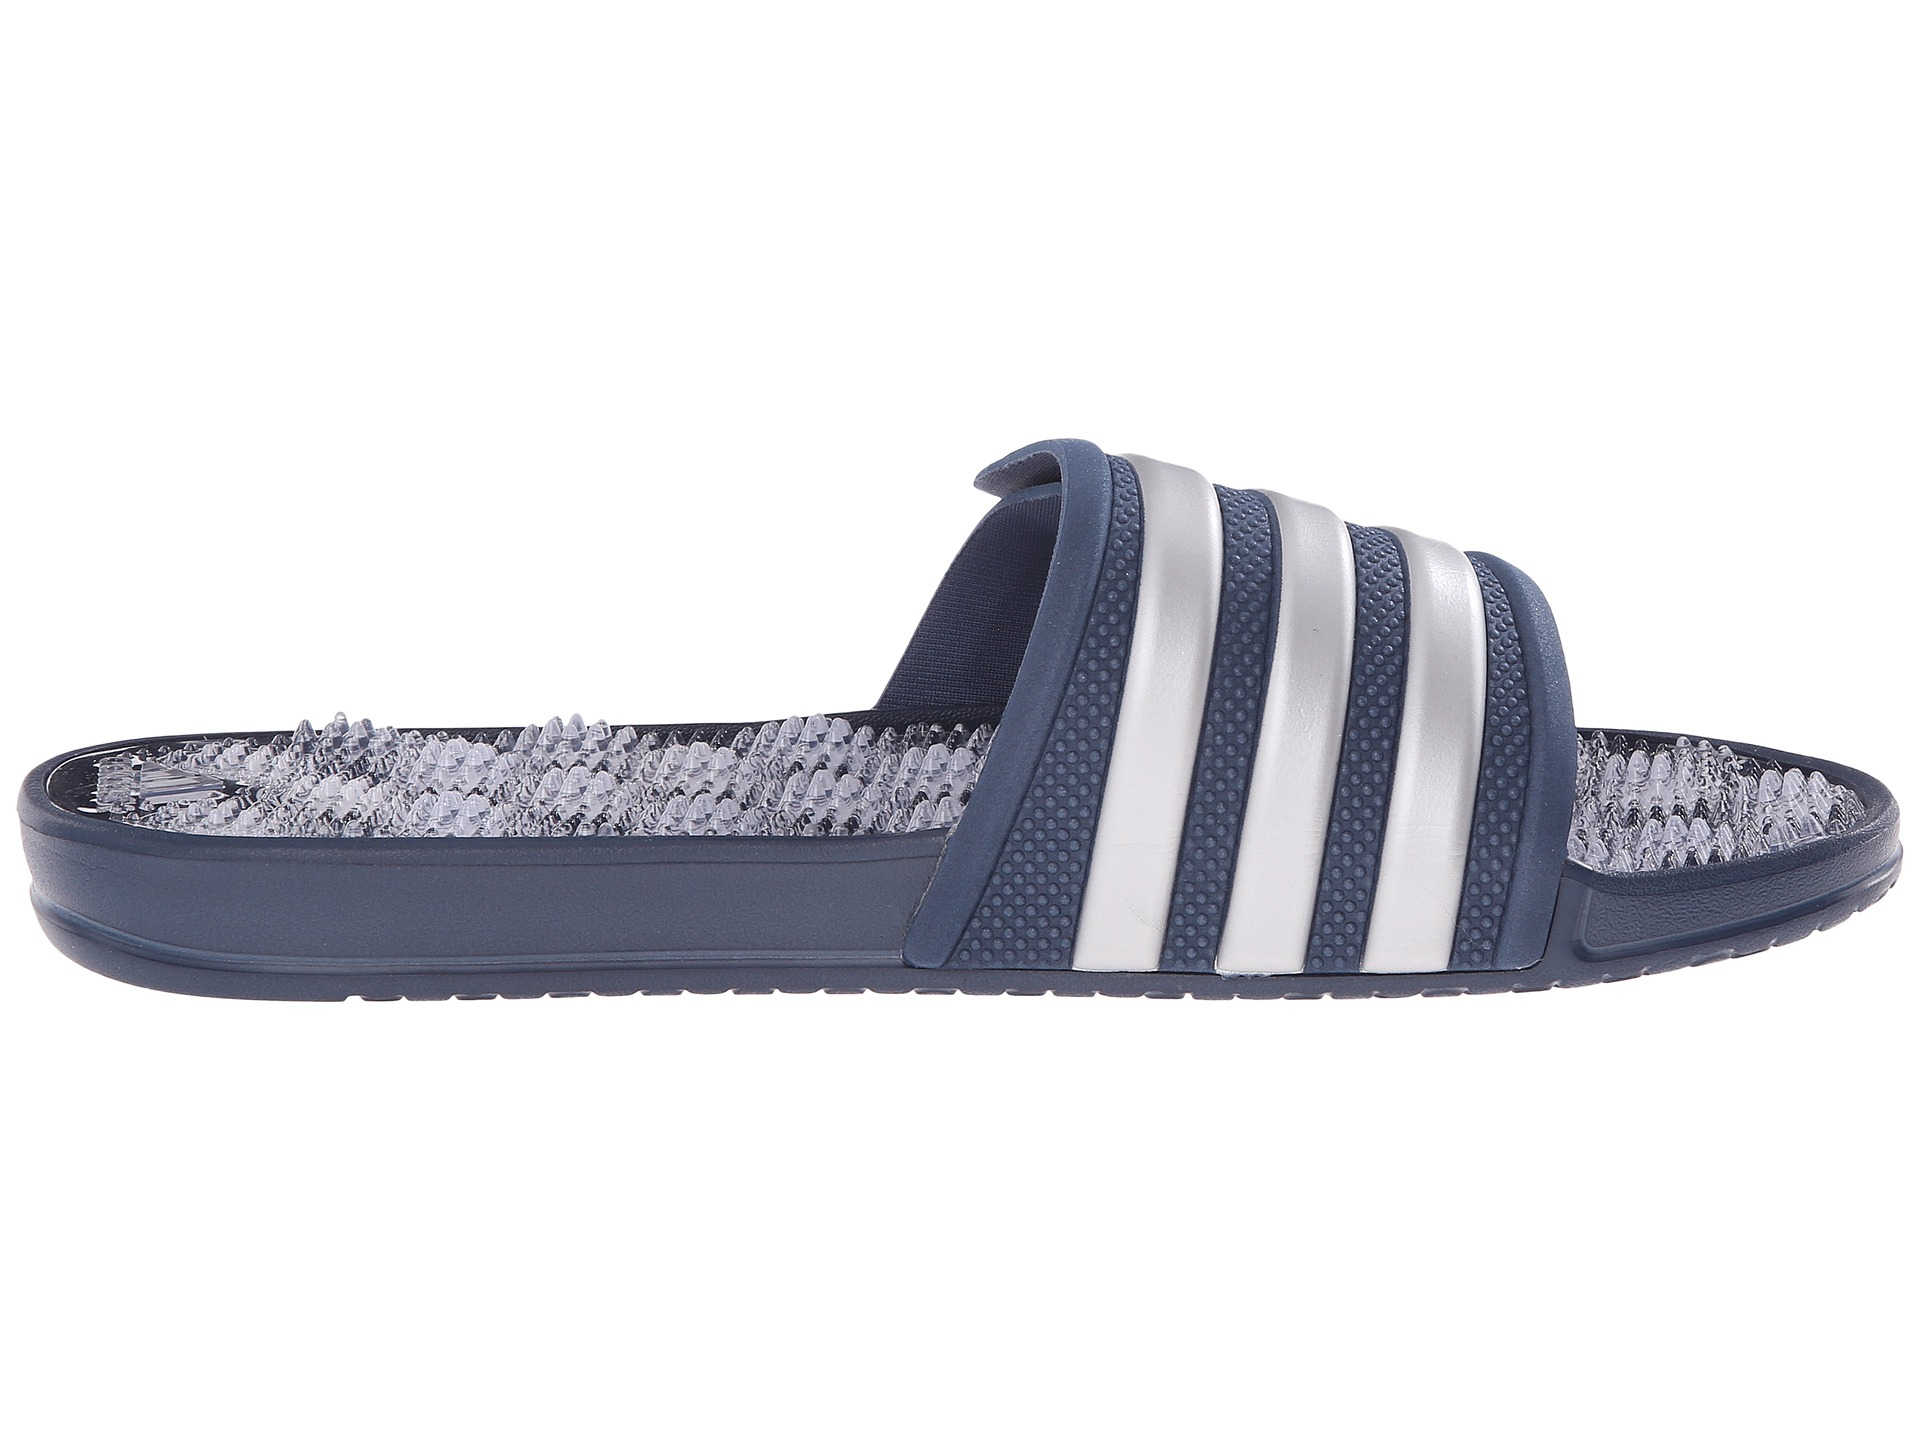 new product ba2f8 ca267 Lyst - adidas Originals Adissage 2.0 M Stripe in Blue for Me